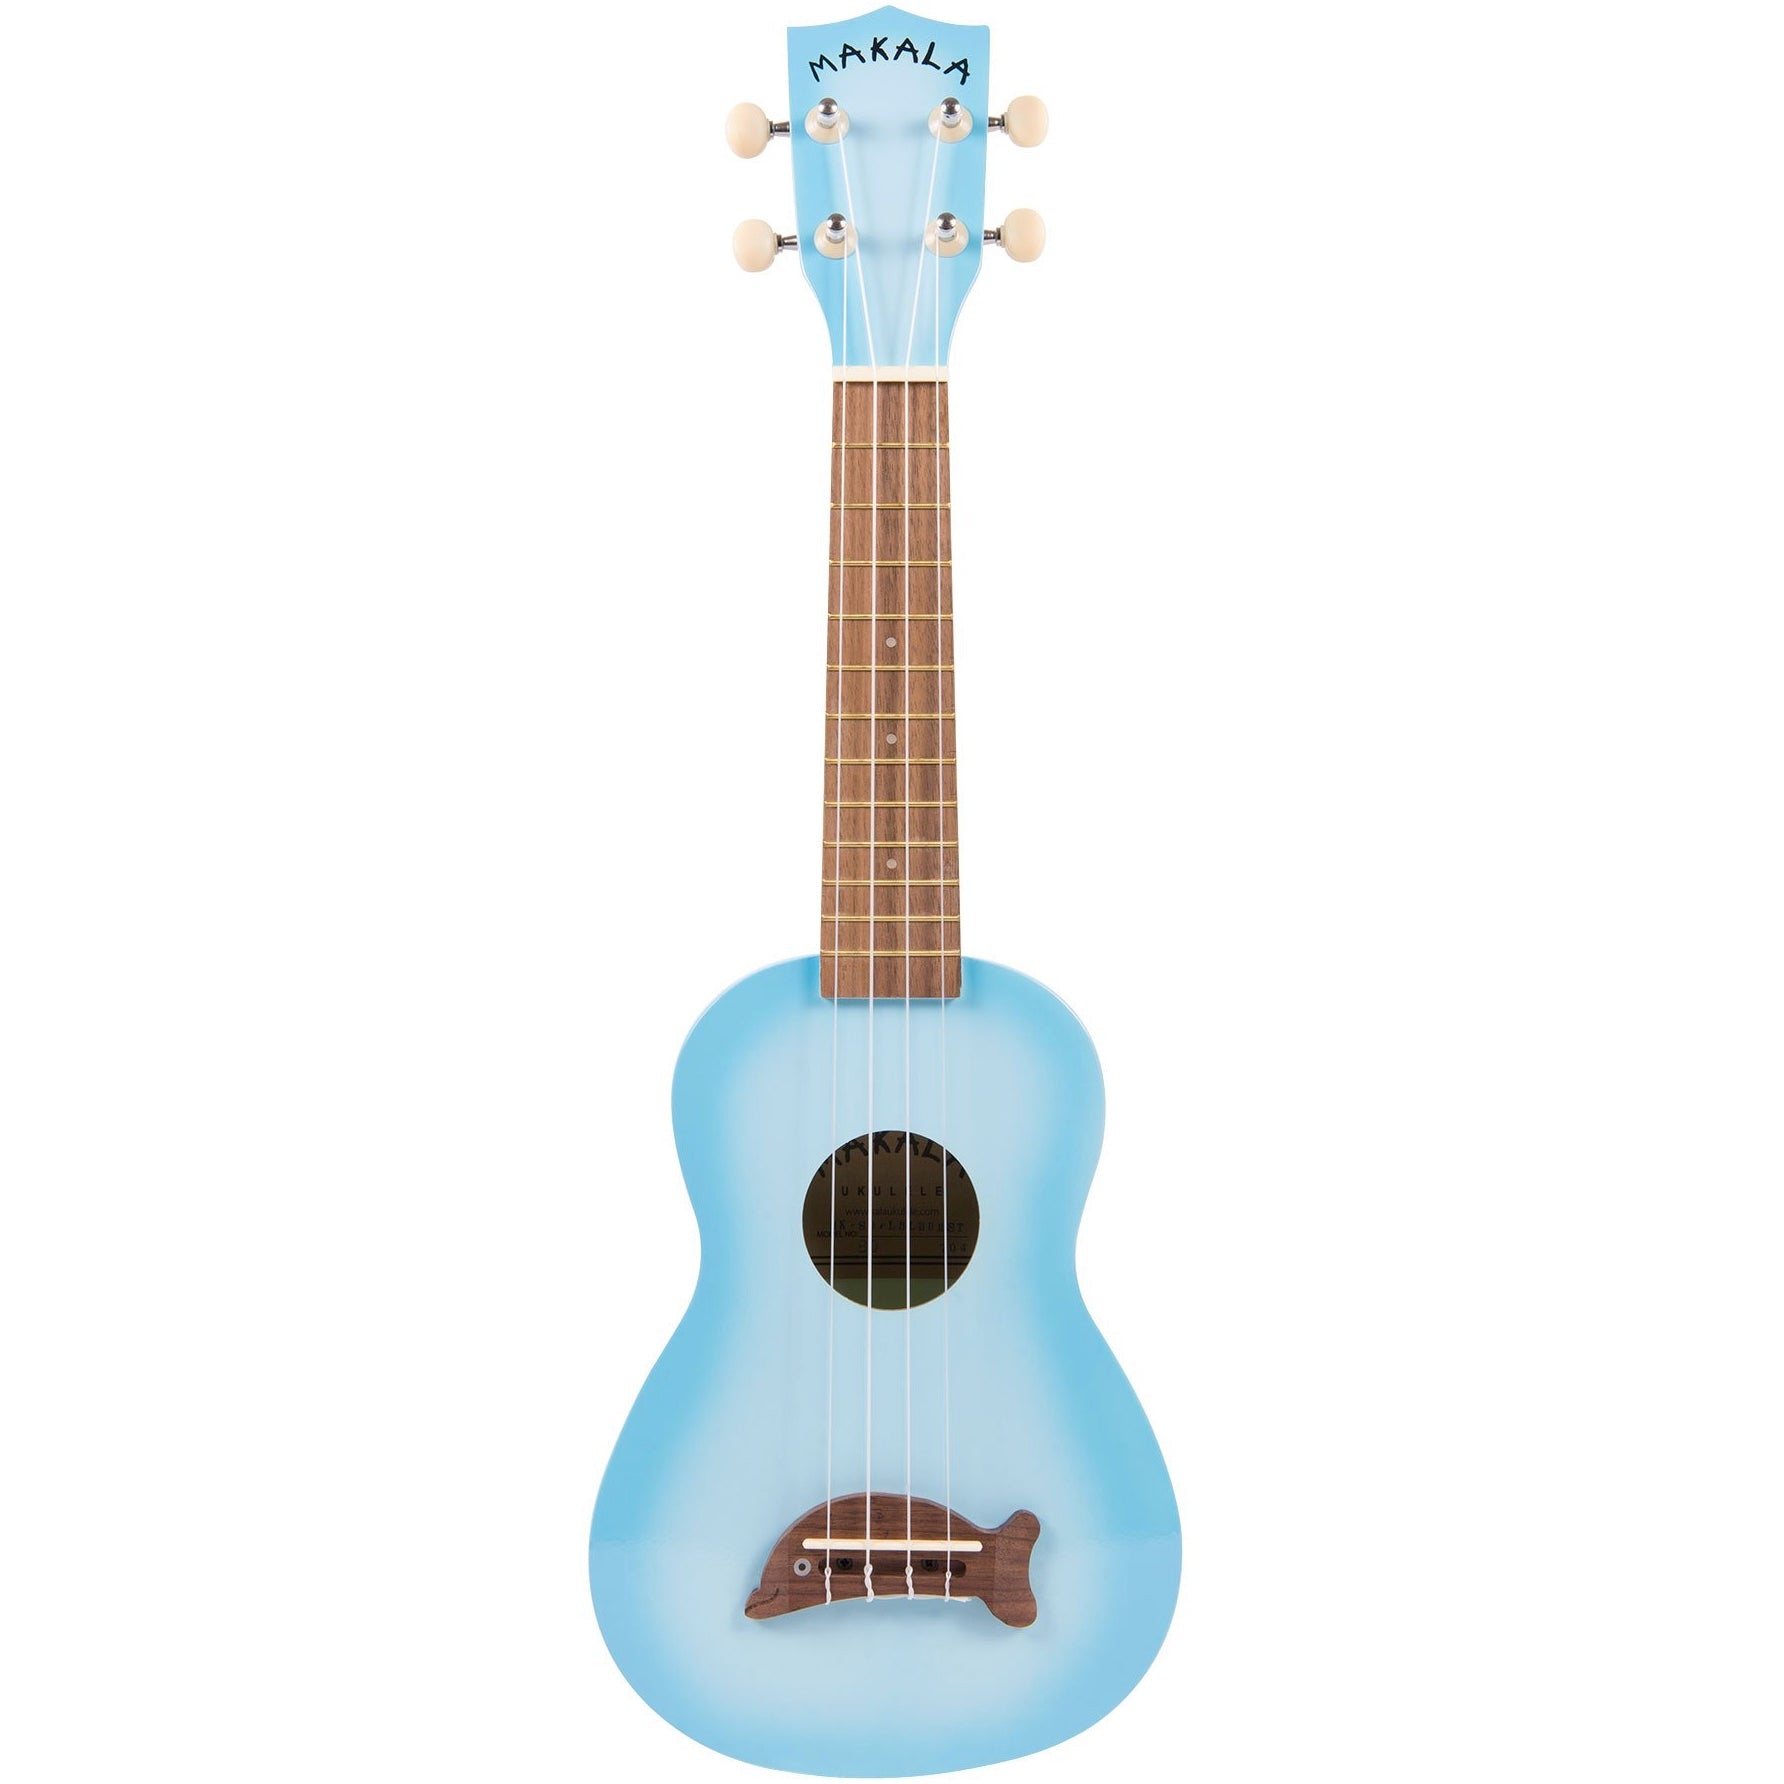 Kala MK-SD/LBL Makala Light Blue Burst Soprano Dolphin | Music Experience | Shop Online | South Africa